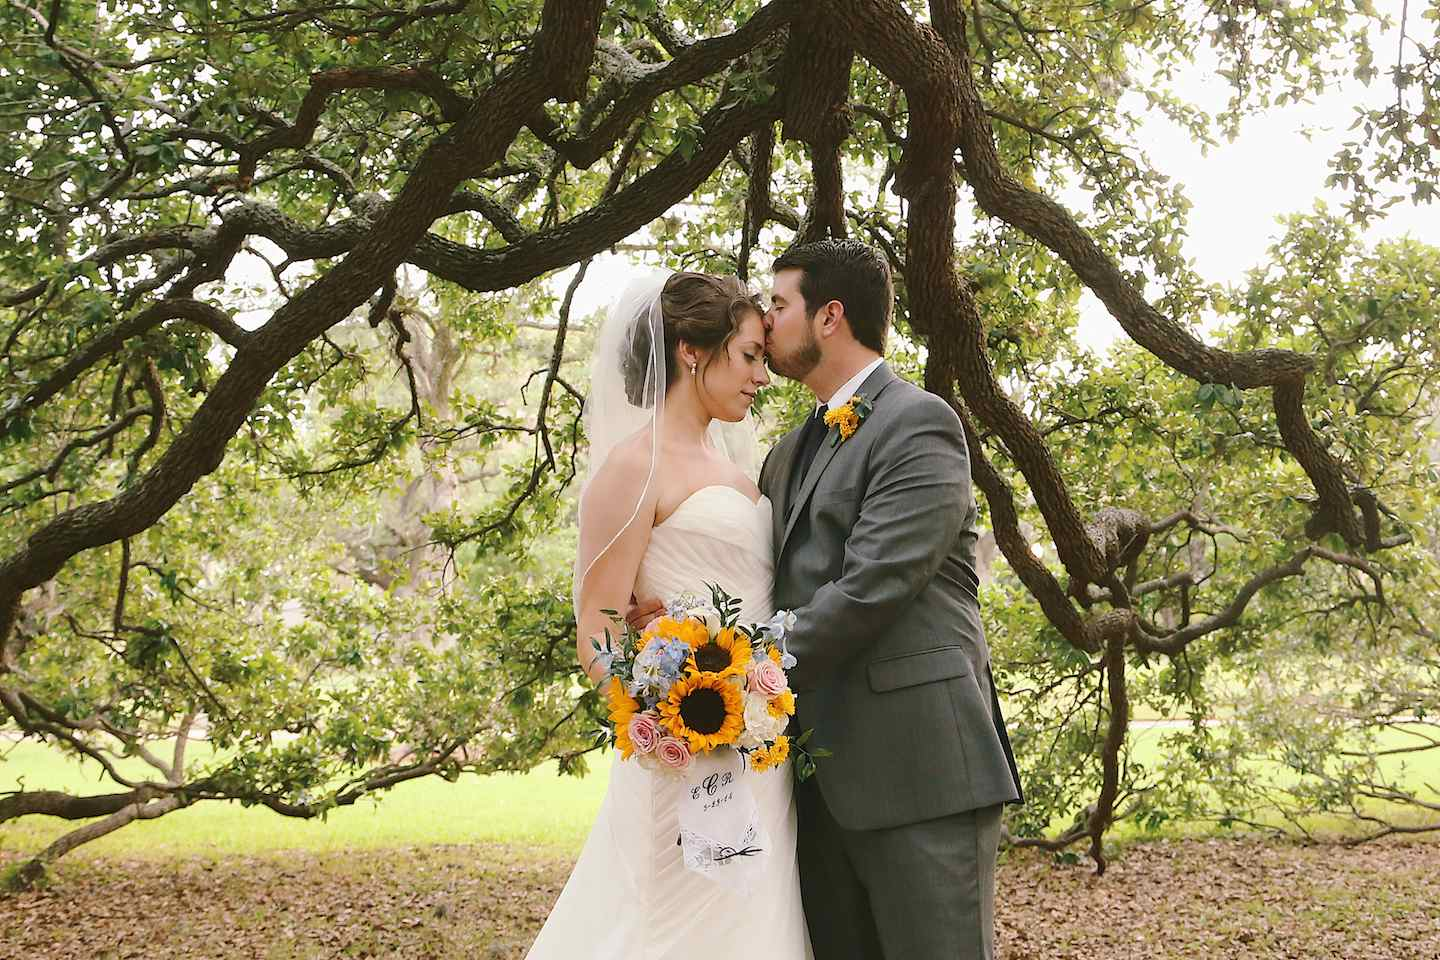 12330How To Get Married Under The Century Tree